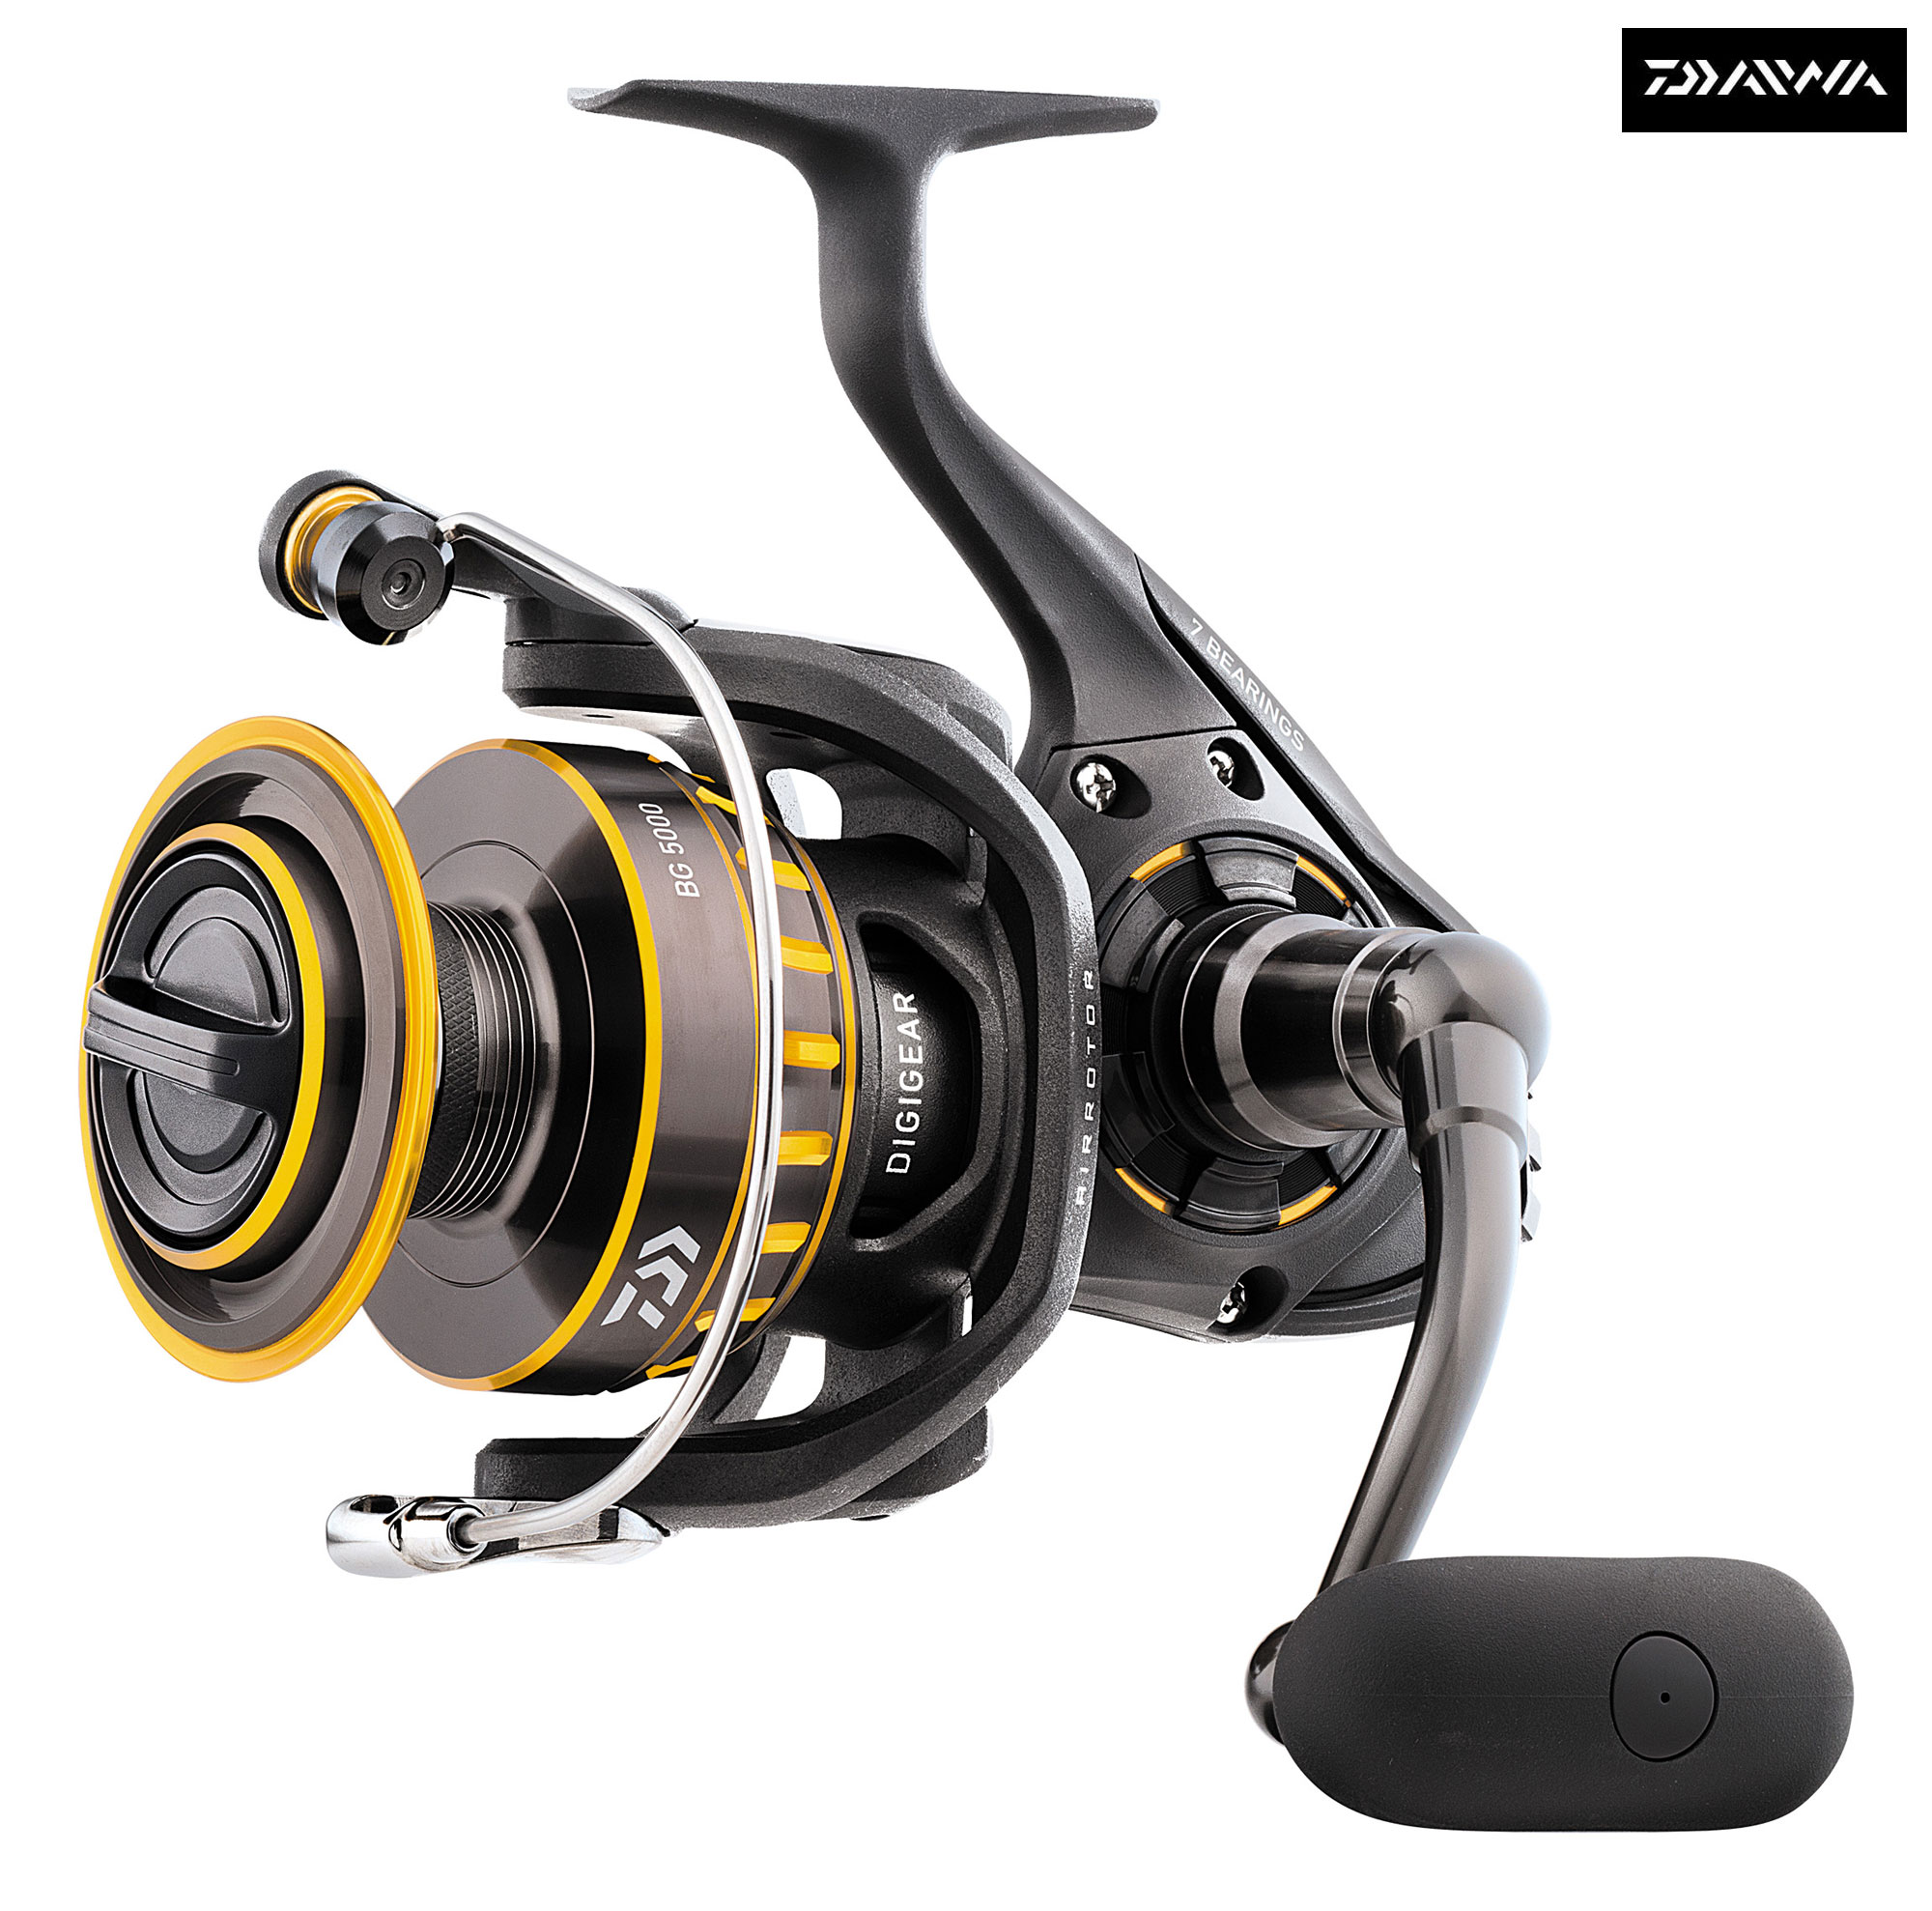 New daiwa bg spinning reels freshwater saltwater all for Ebay fishing reels